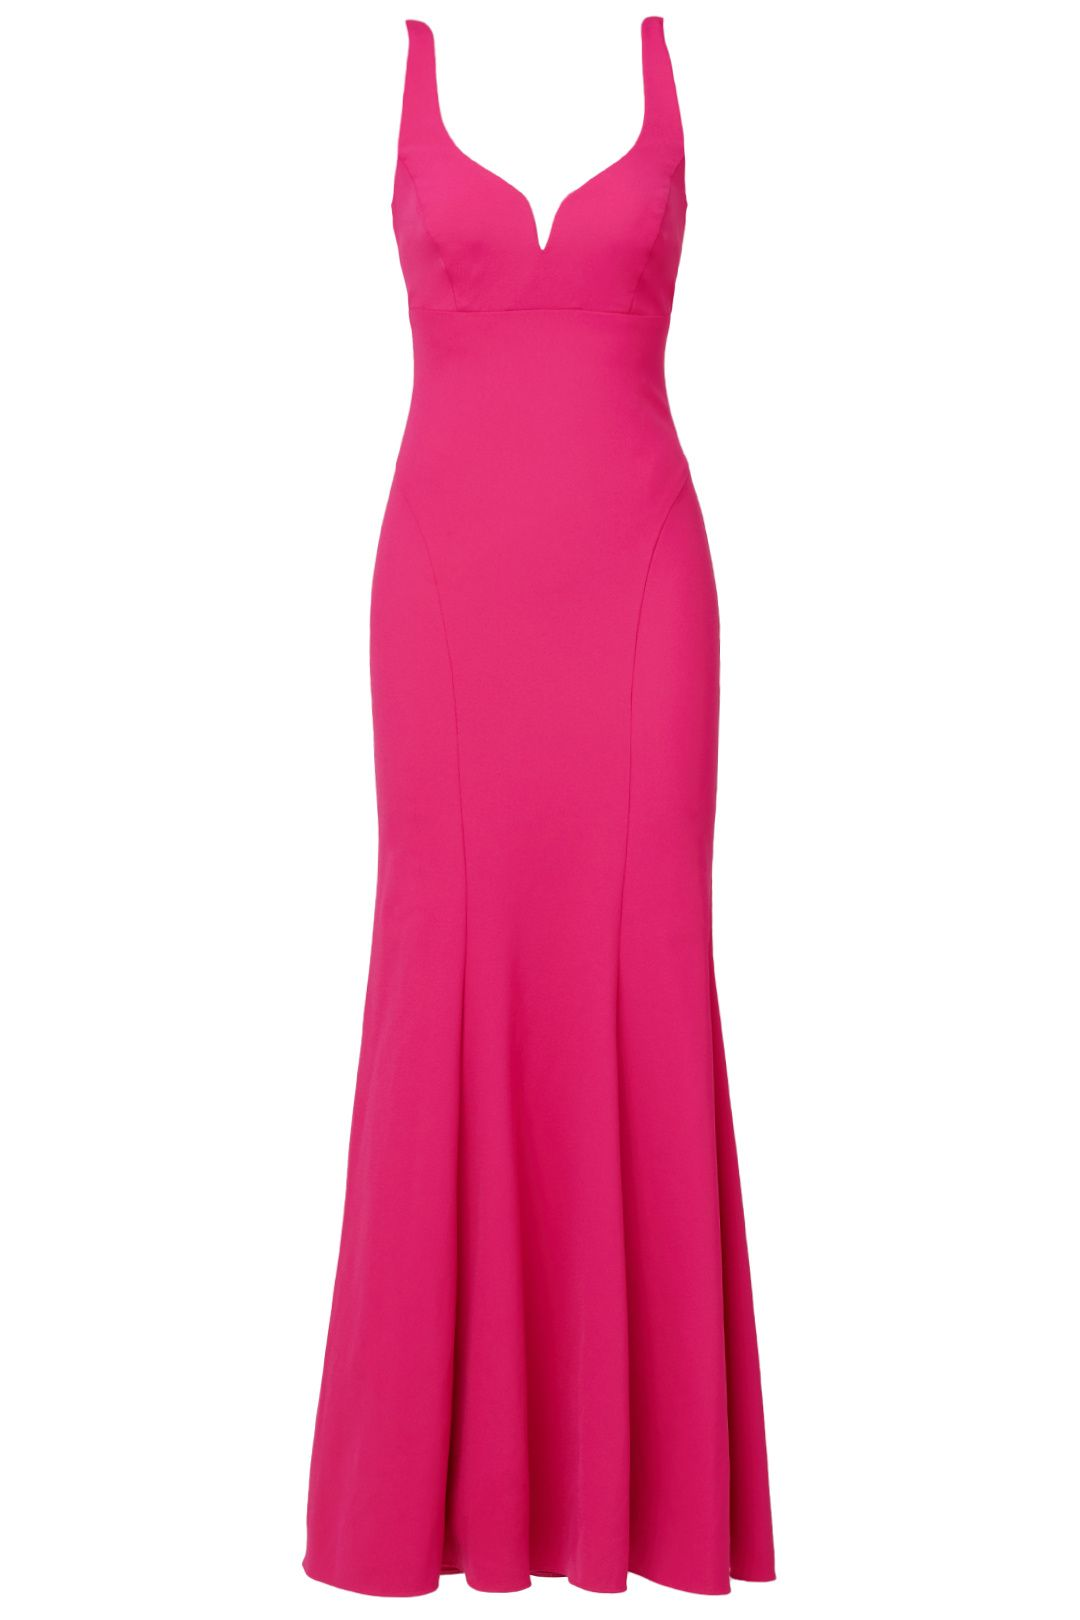 Full Heart Gown by Nicole Miller for $90 | Rent The Runway | Fashion ...